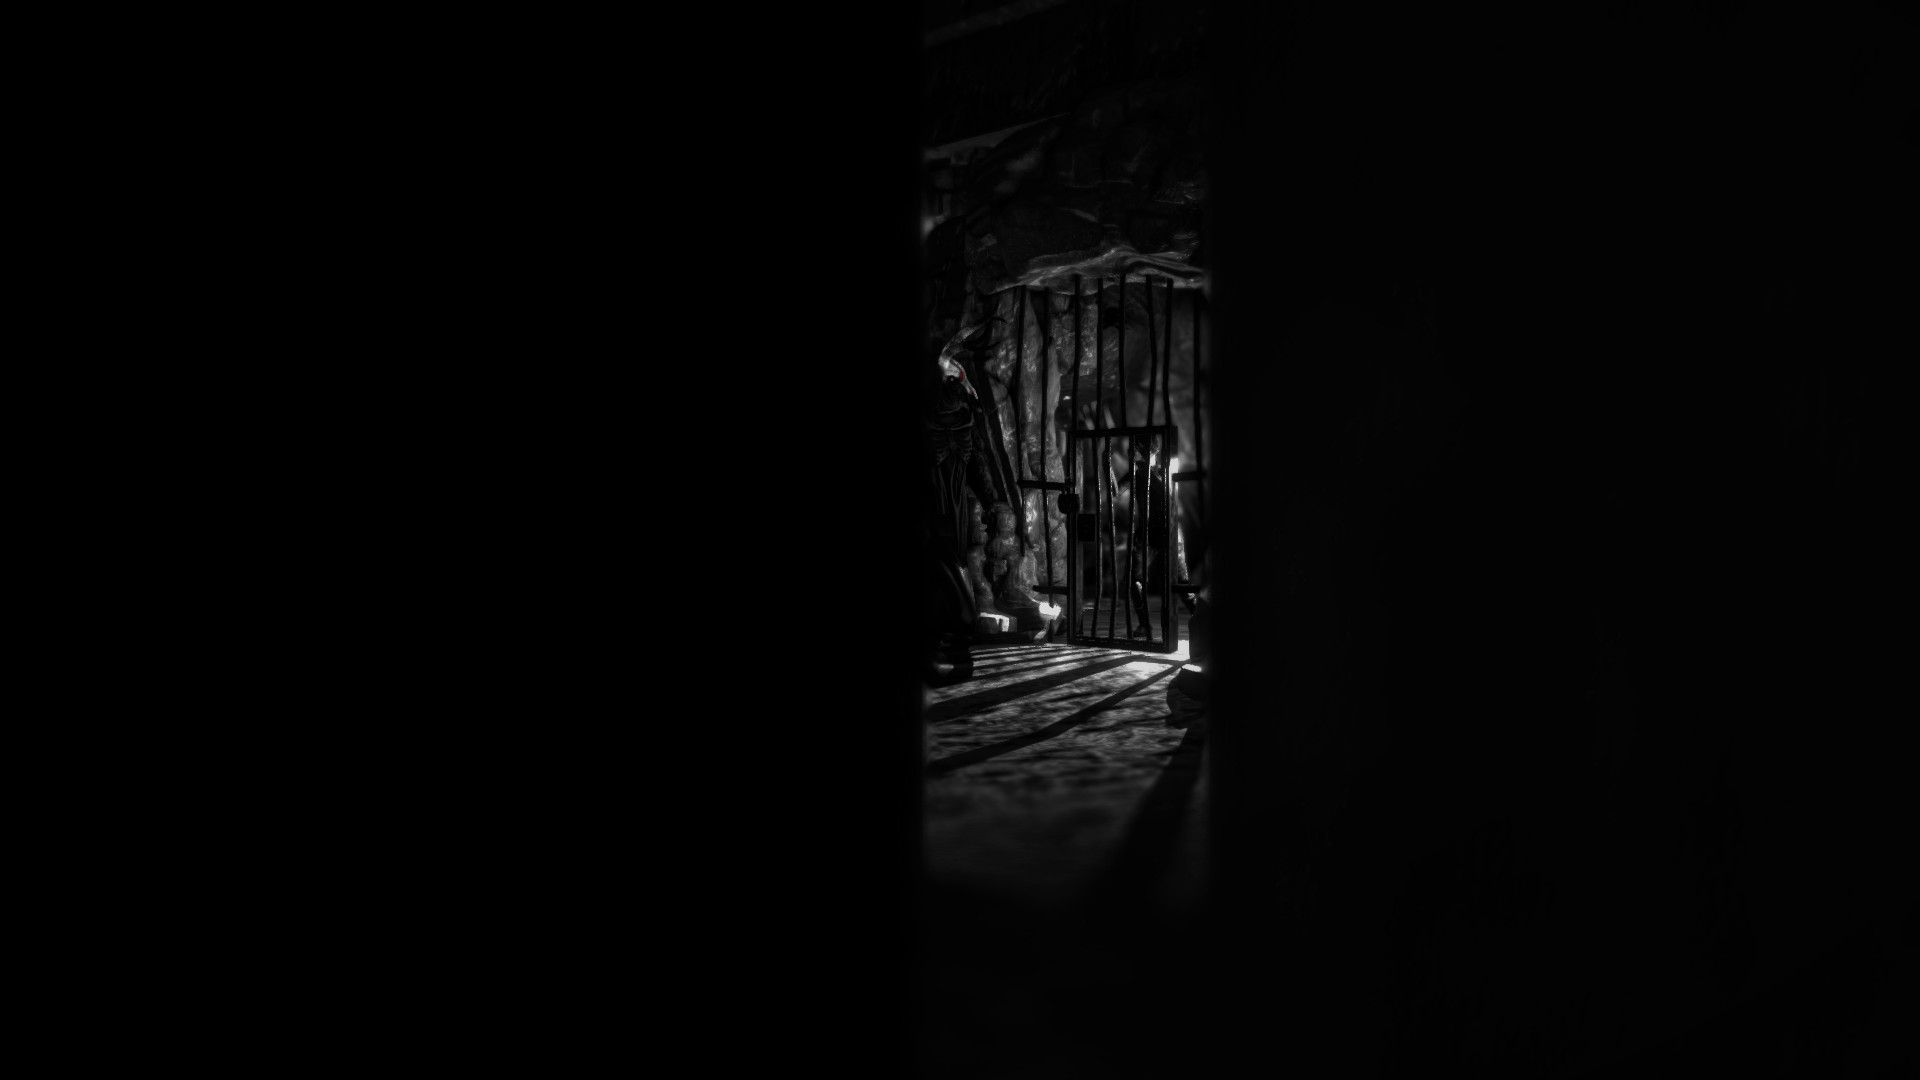 Hiding in a cupboard, the shadows add greatly to the unsettling atmosphere